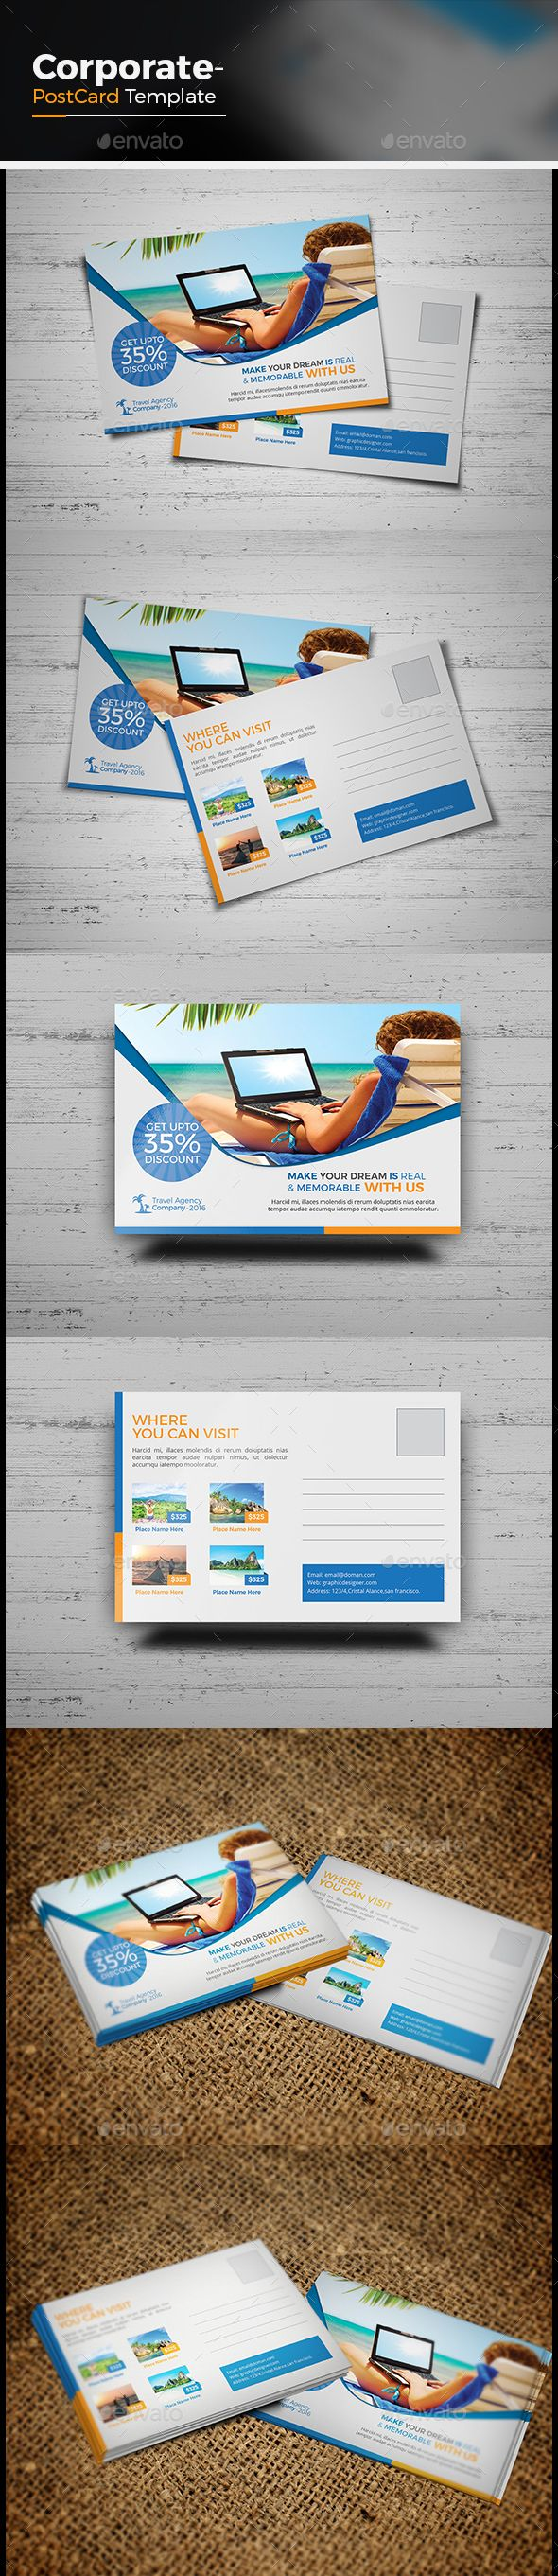 Postcard Template Illustrator. postcard template media templates ...